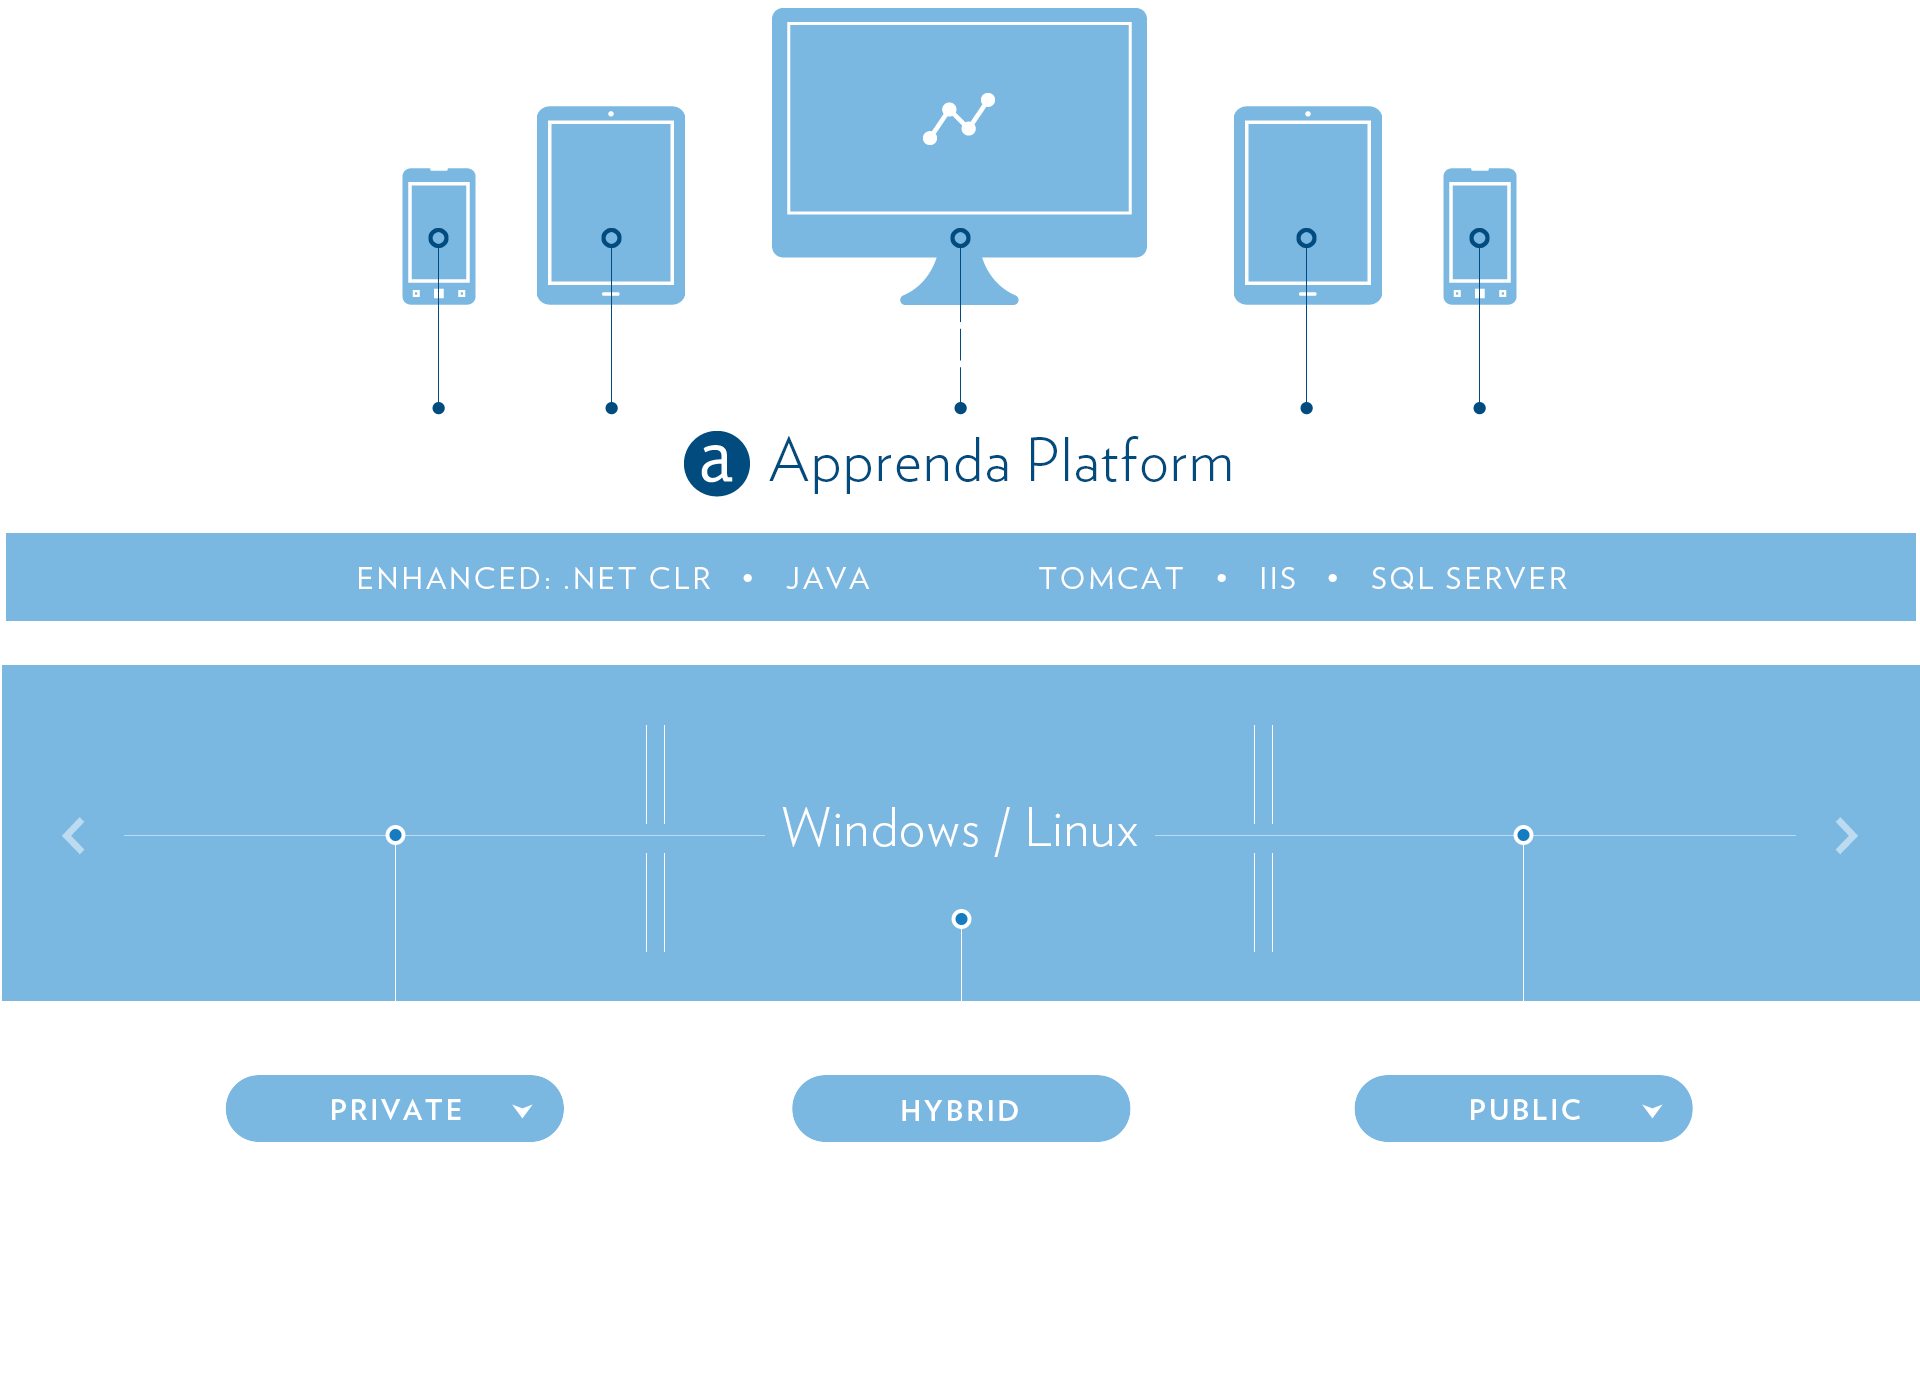 Diagram of the Apprenda Platform